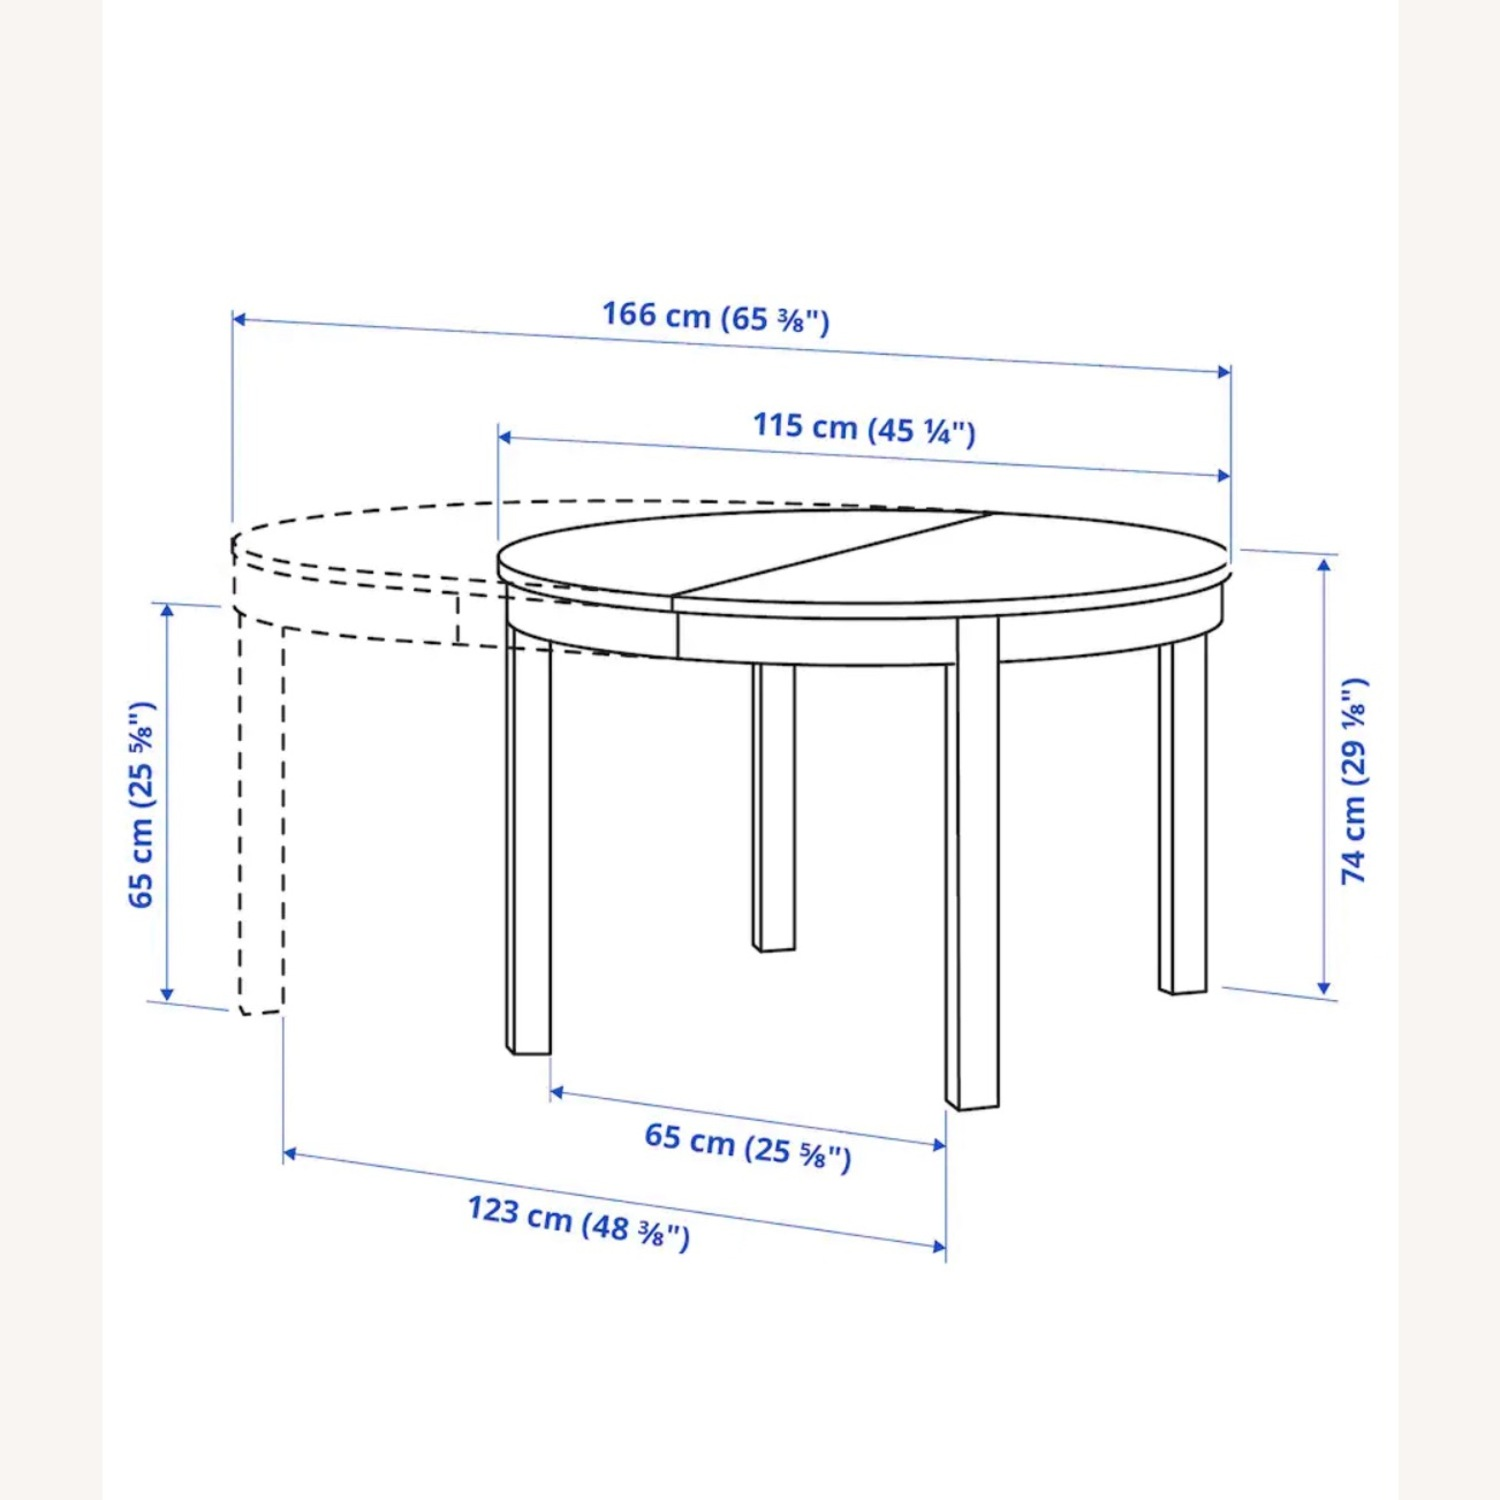 IKEA Dining Set - BJURSTA Table with INGOLF Chairs - image-7